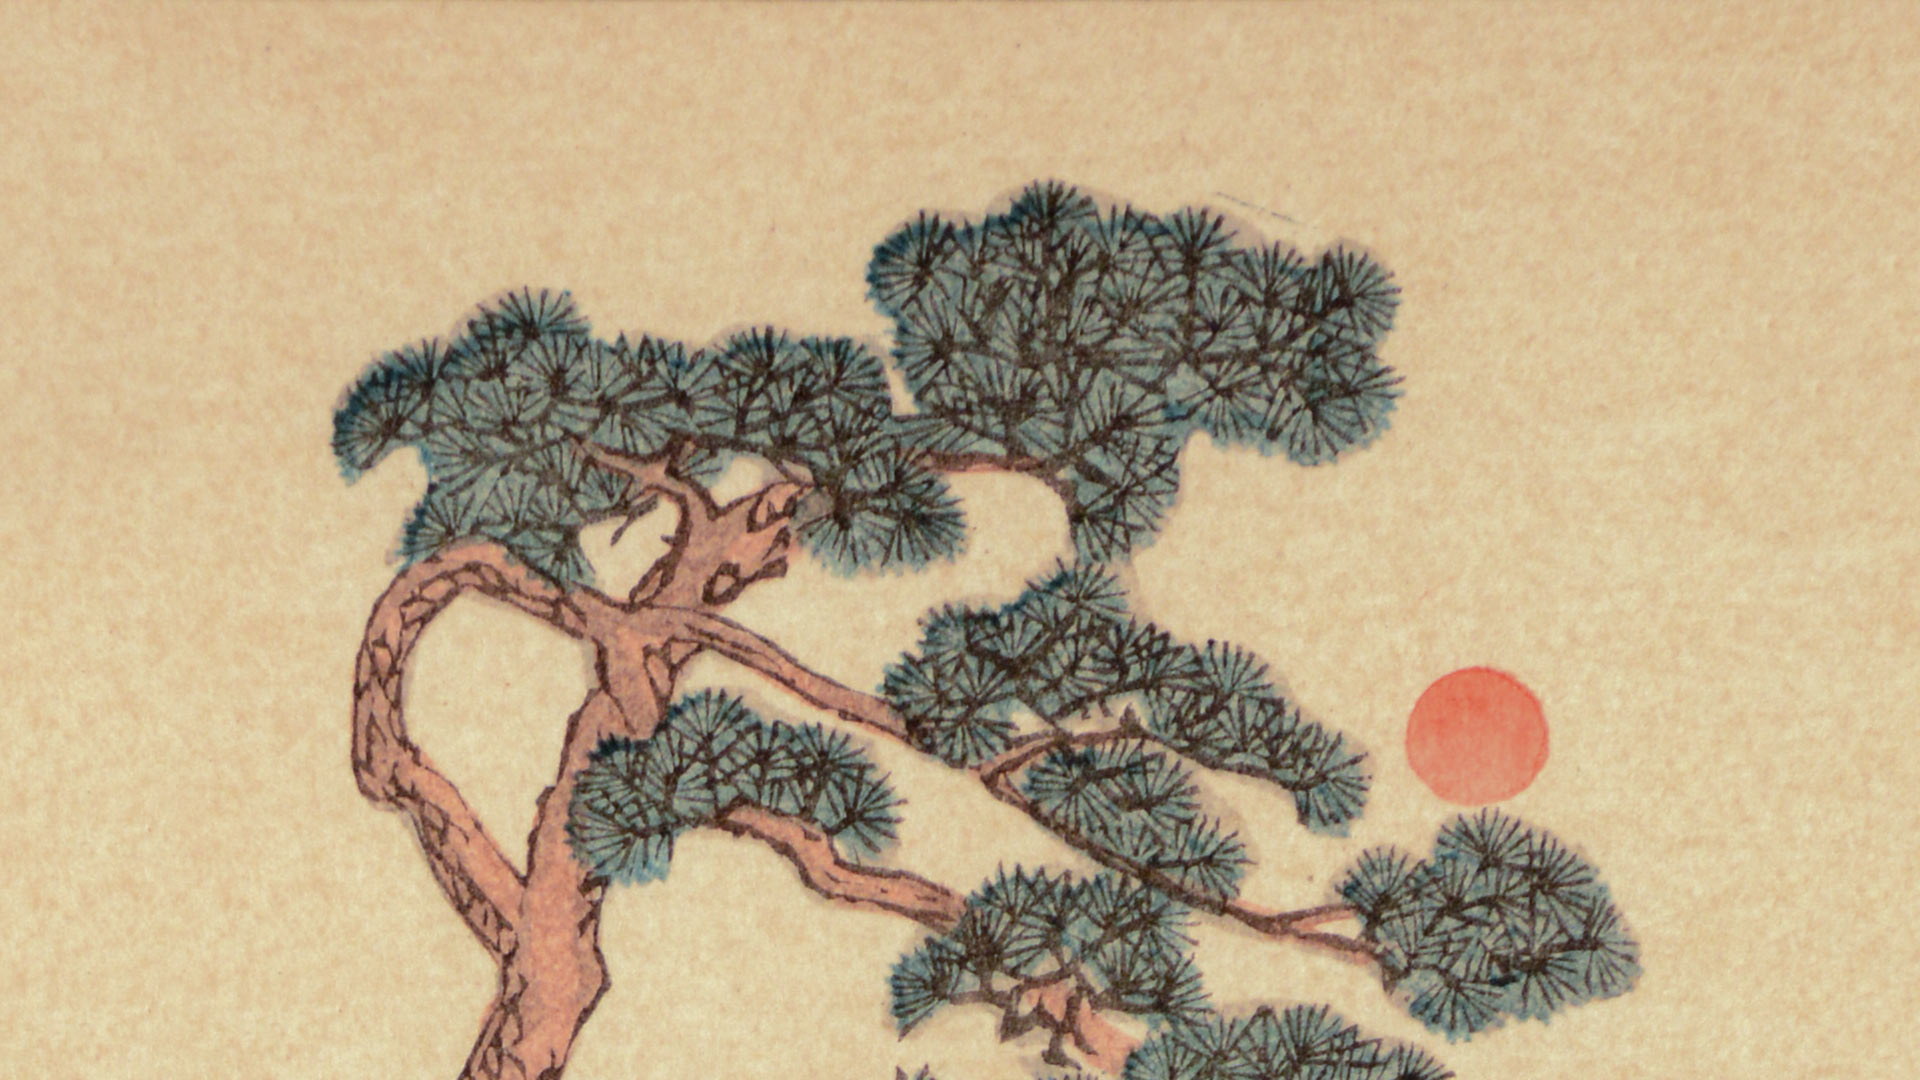 East Asian watercolor painting of a winding tree with an orange sun set against an off-yellow background.